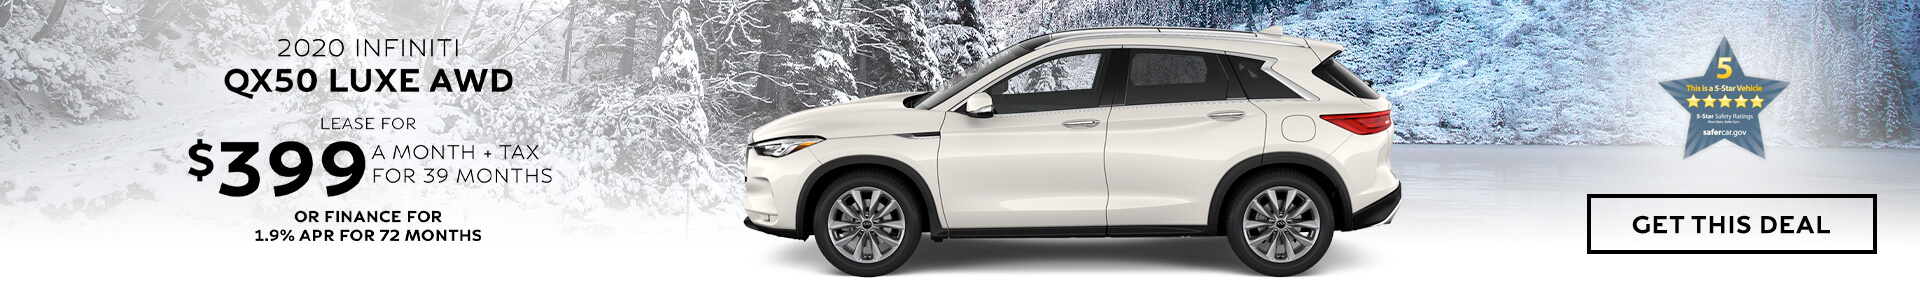 QX50 LUXE - Lease $399